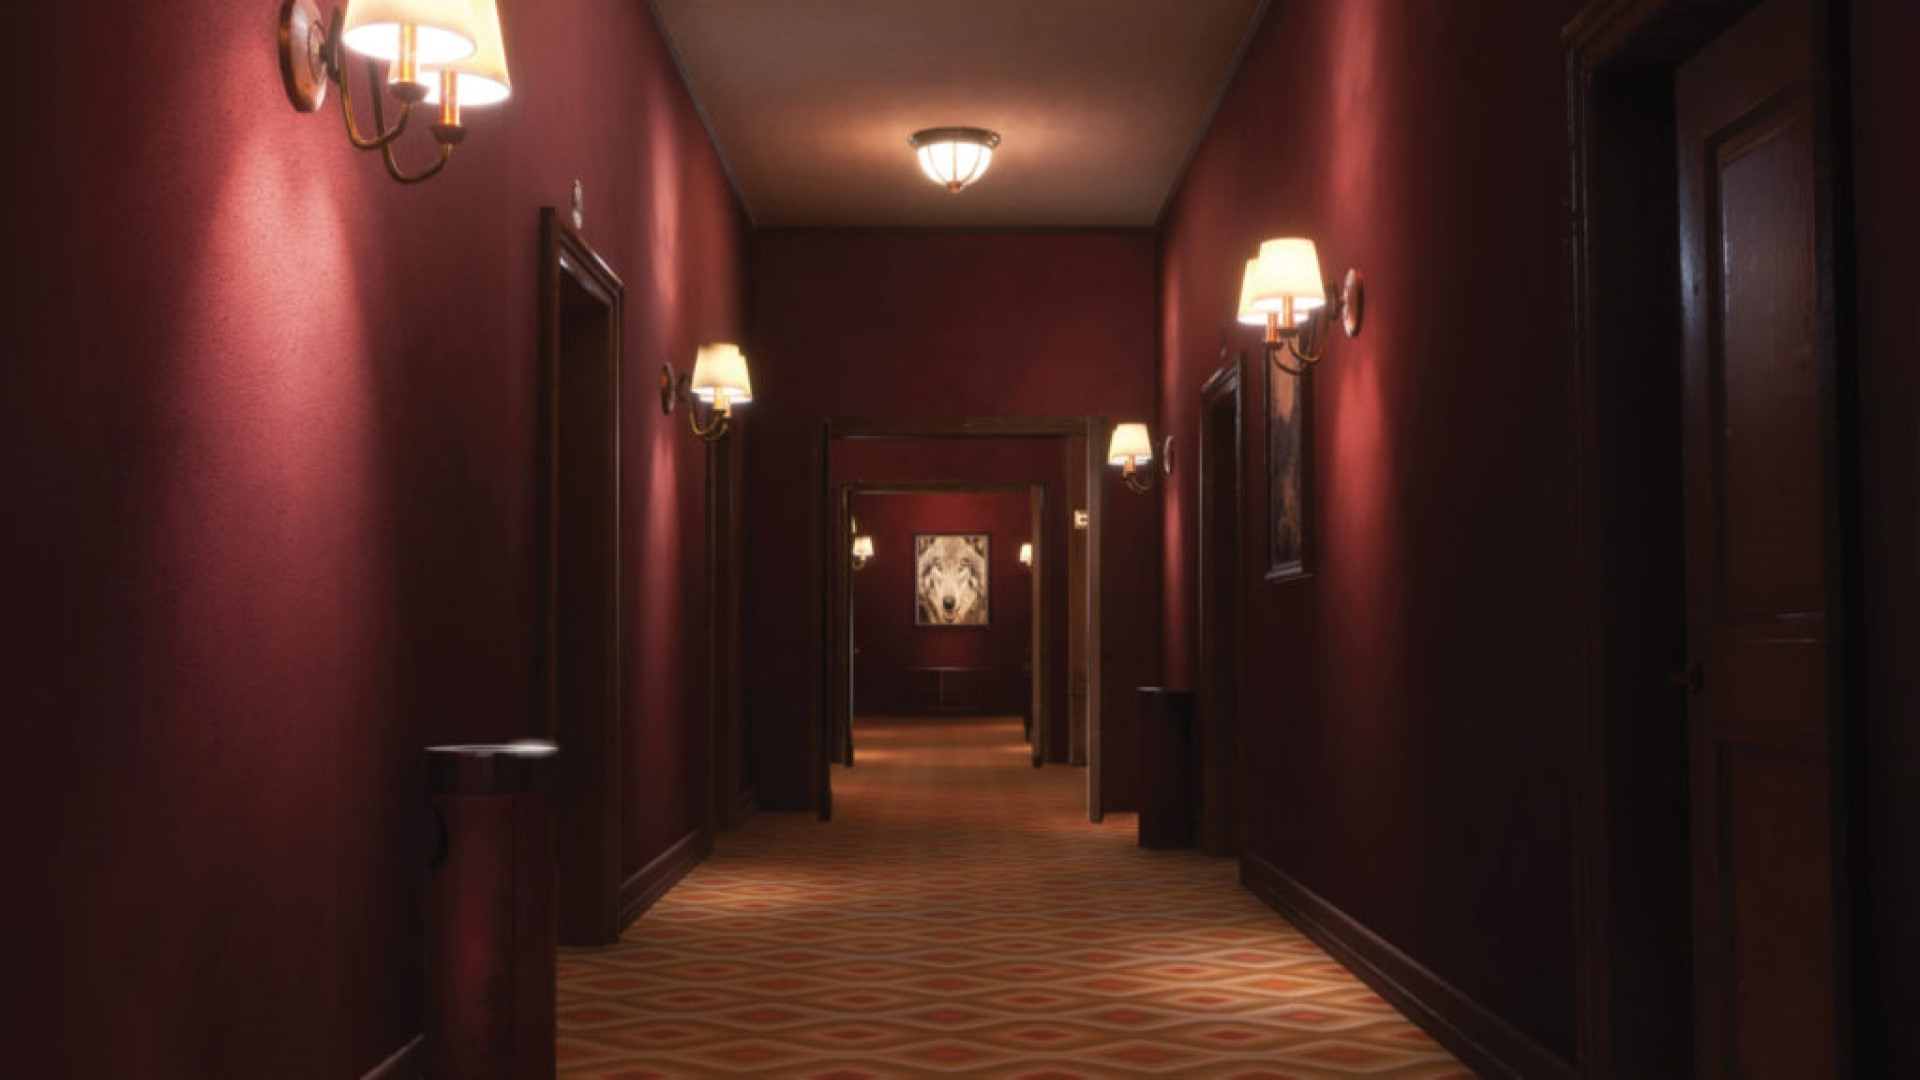 The hotel is as scary as it is luxurious.